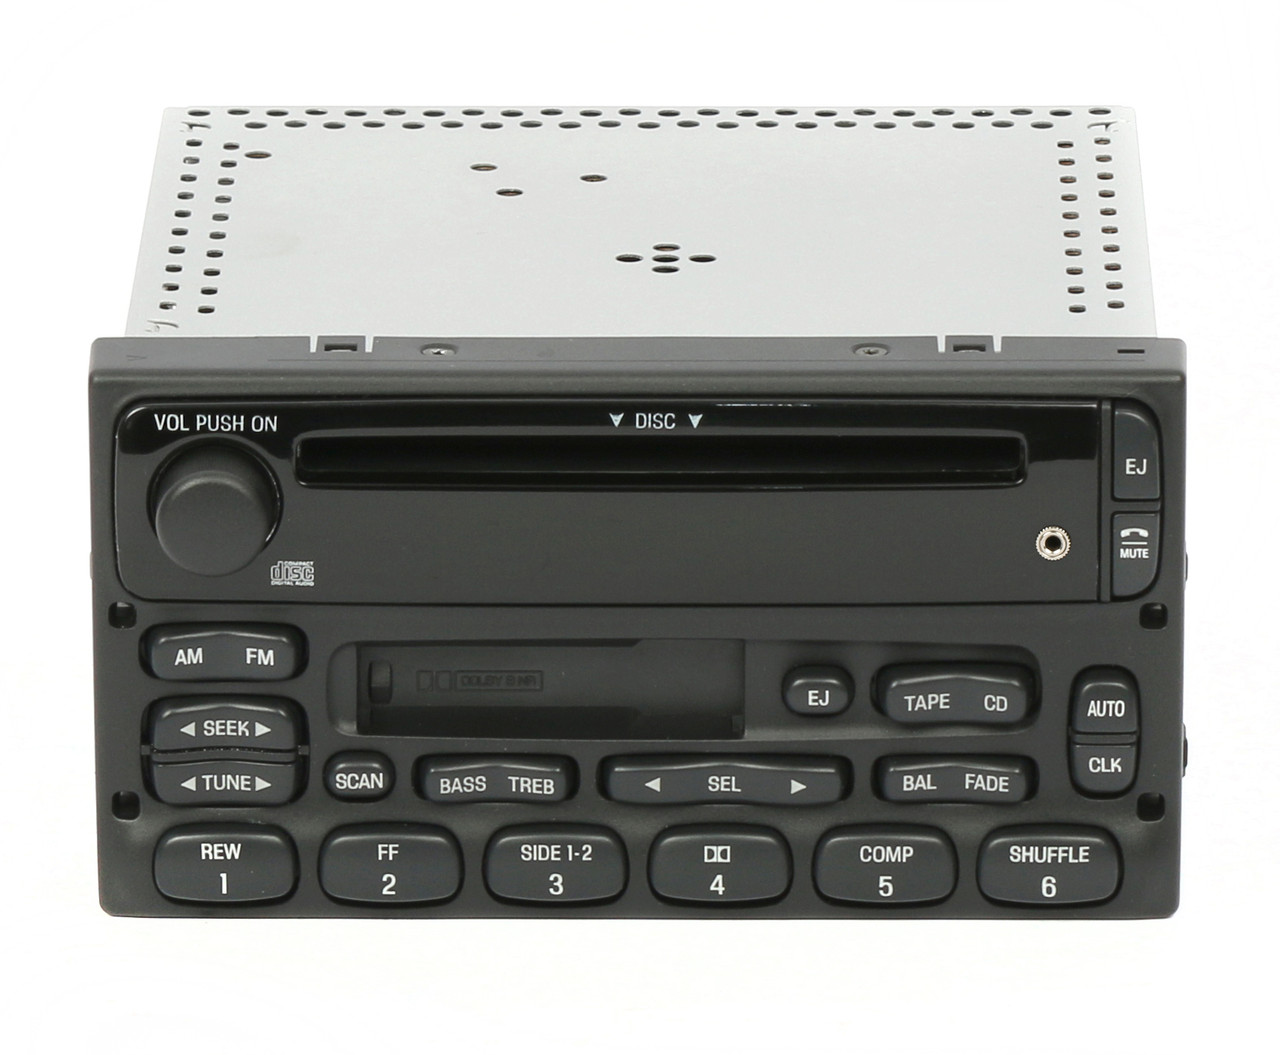 1 Factory Radio AM FM CD Cassette Player w Auxiliary Input Compatible With 1998-2010 Ford Trucks YU3F-18C868-AA